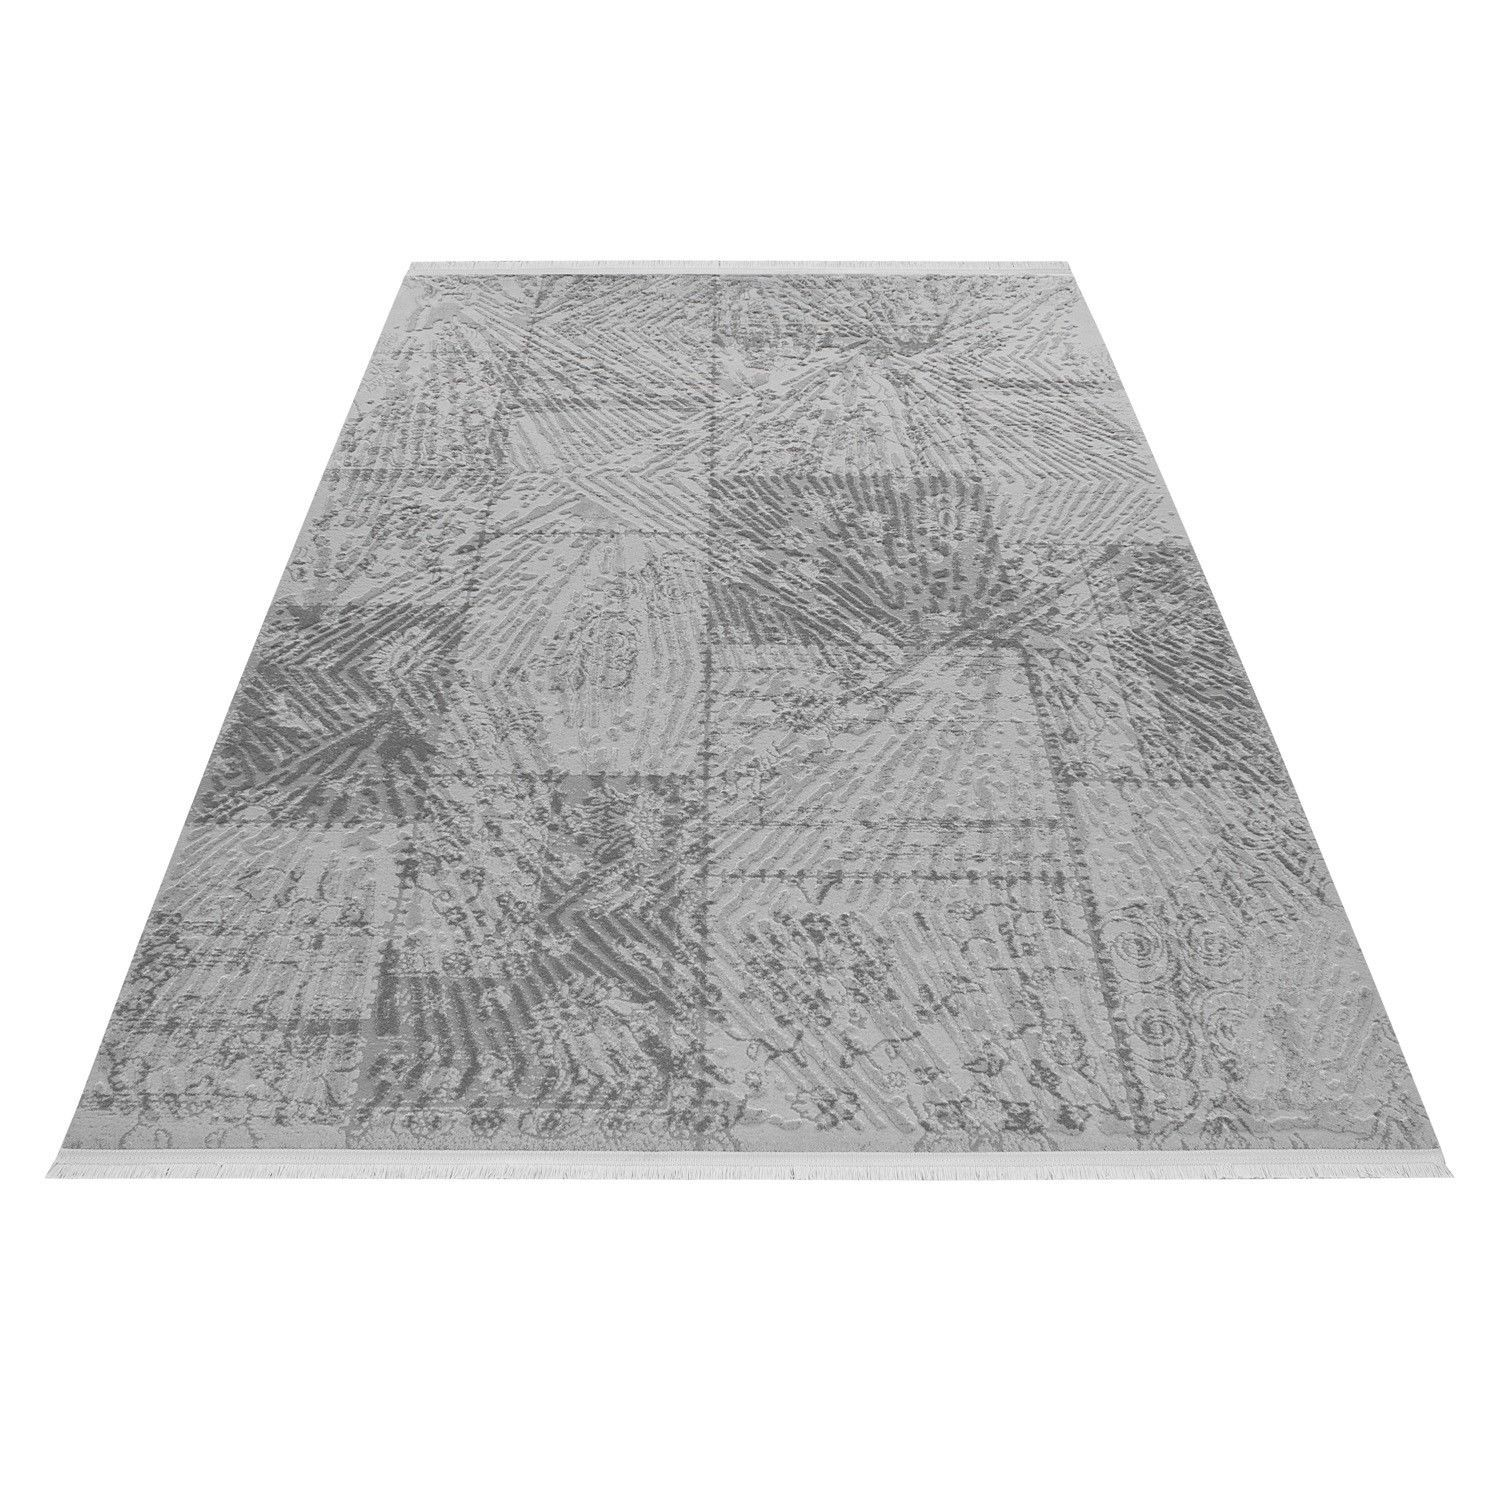 Tapis gris style baroque acrylique haut qualite naturel brillant sencha 13 Tapis synthetique exterieur